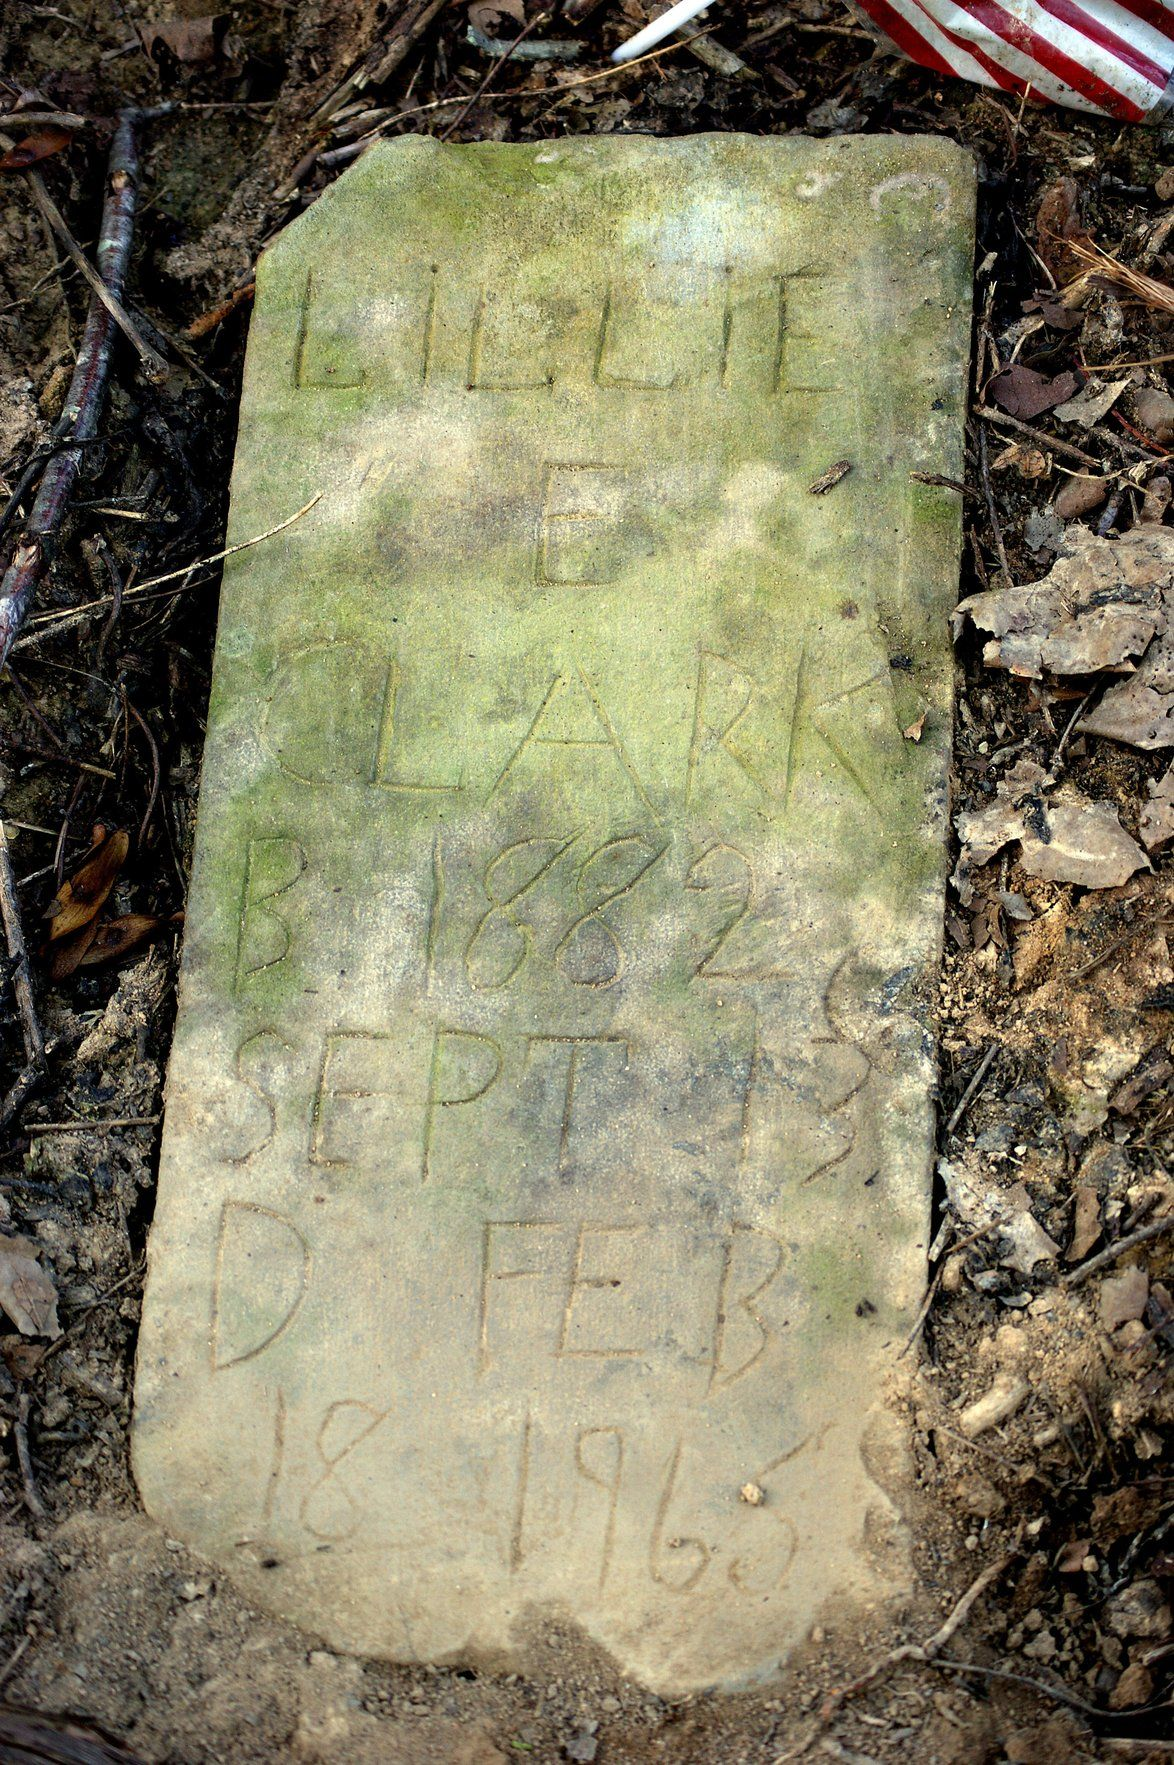 Hand-scratched headstone of Lillie E. Clark (1882-1965) found sunken in the earth during cleanup efforts in 2013